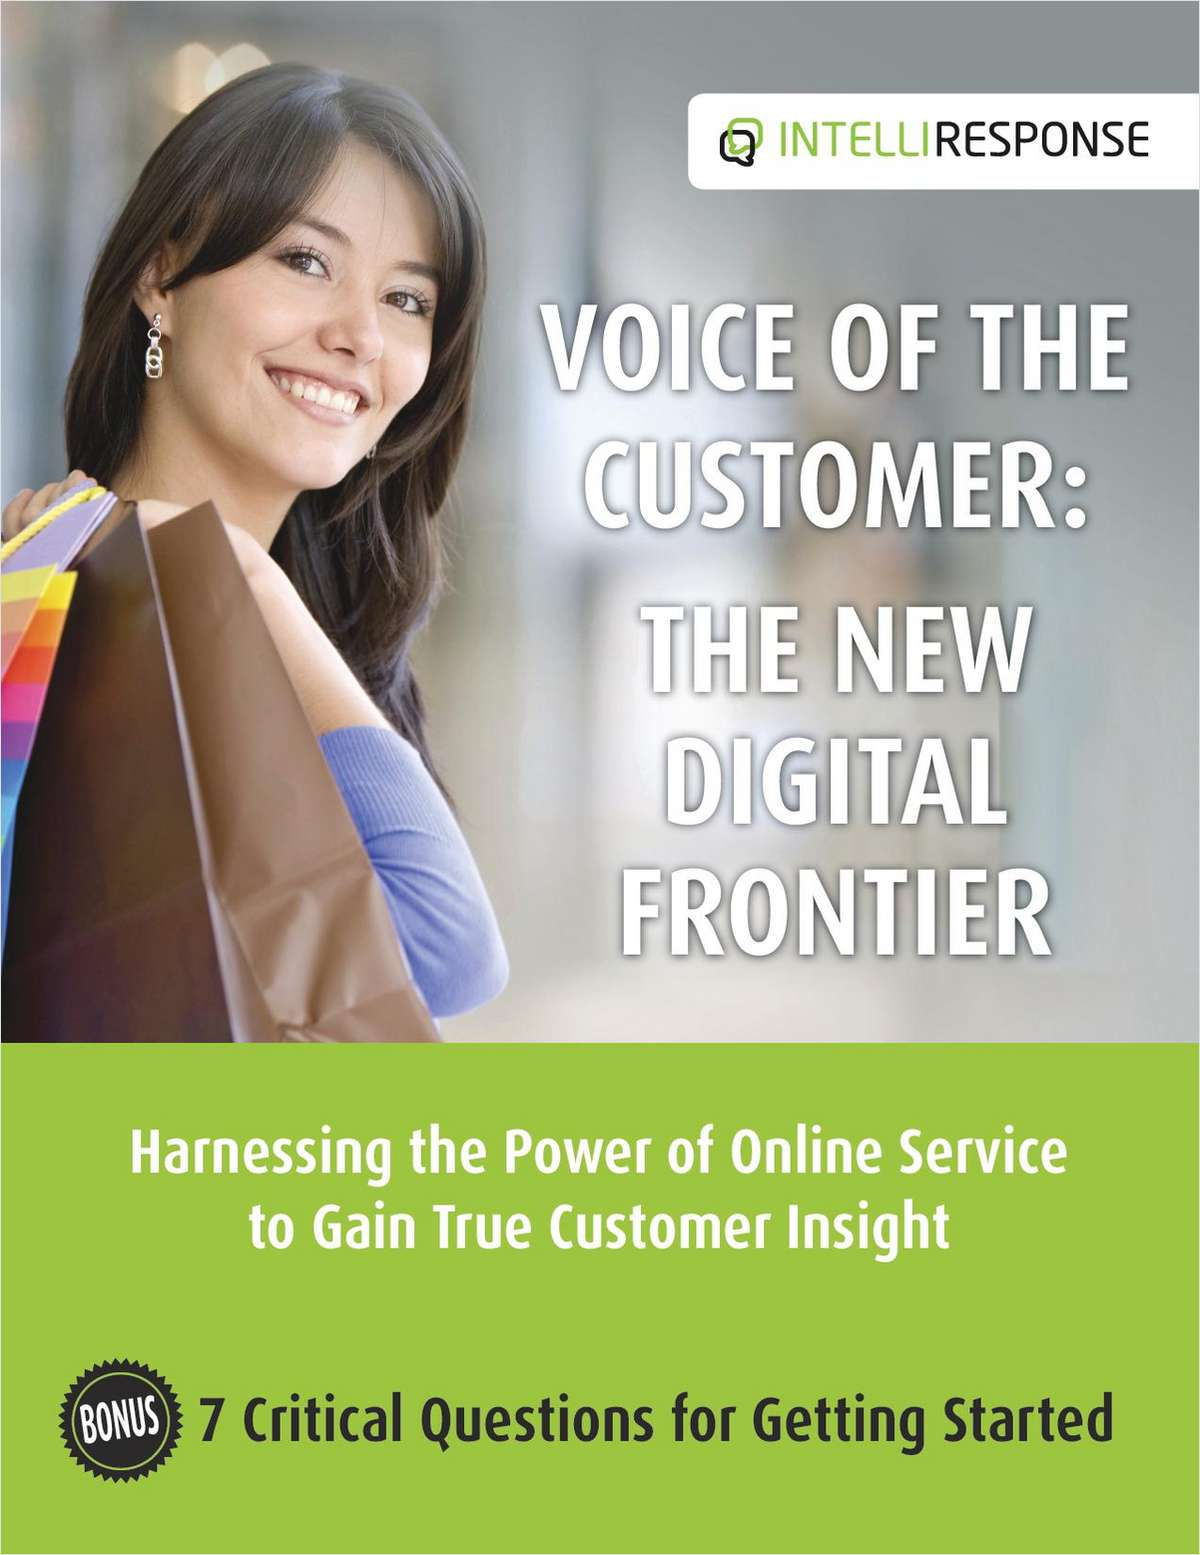 Voice of the Customer: The New Digital Frontier